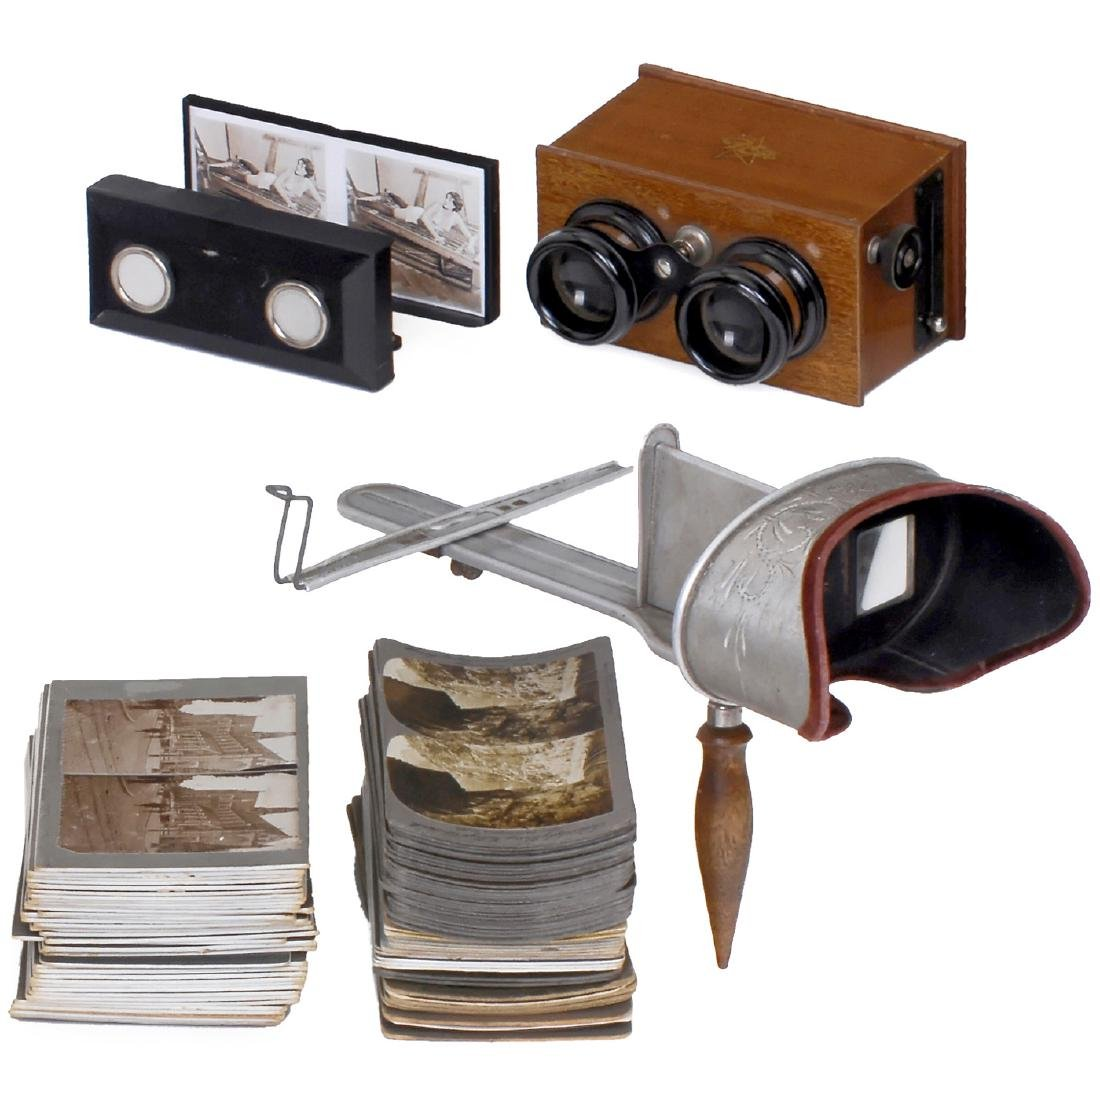 3 Stereo Viewer and Stereo Cards